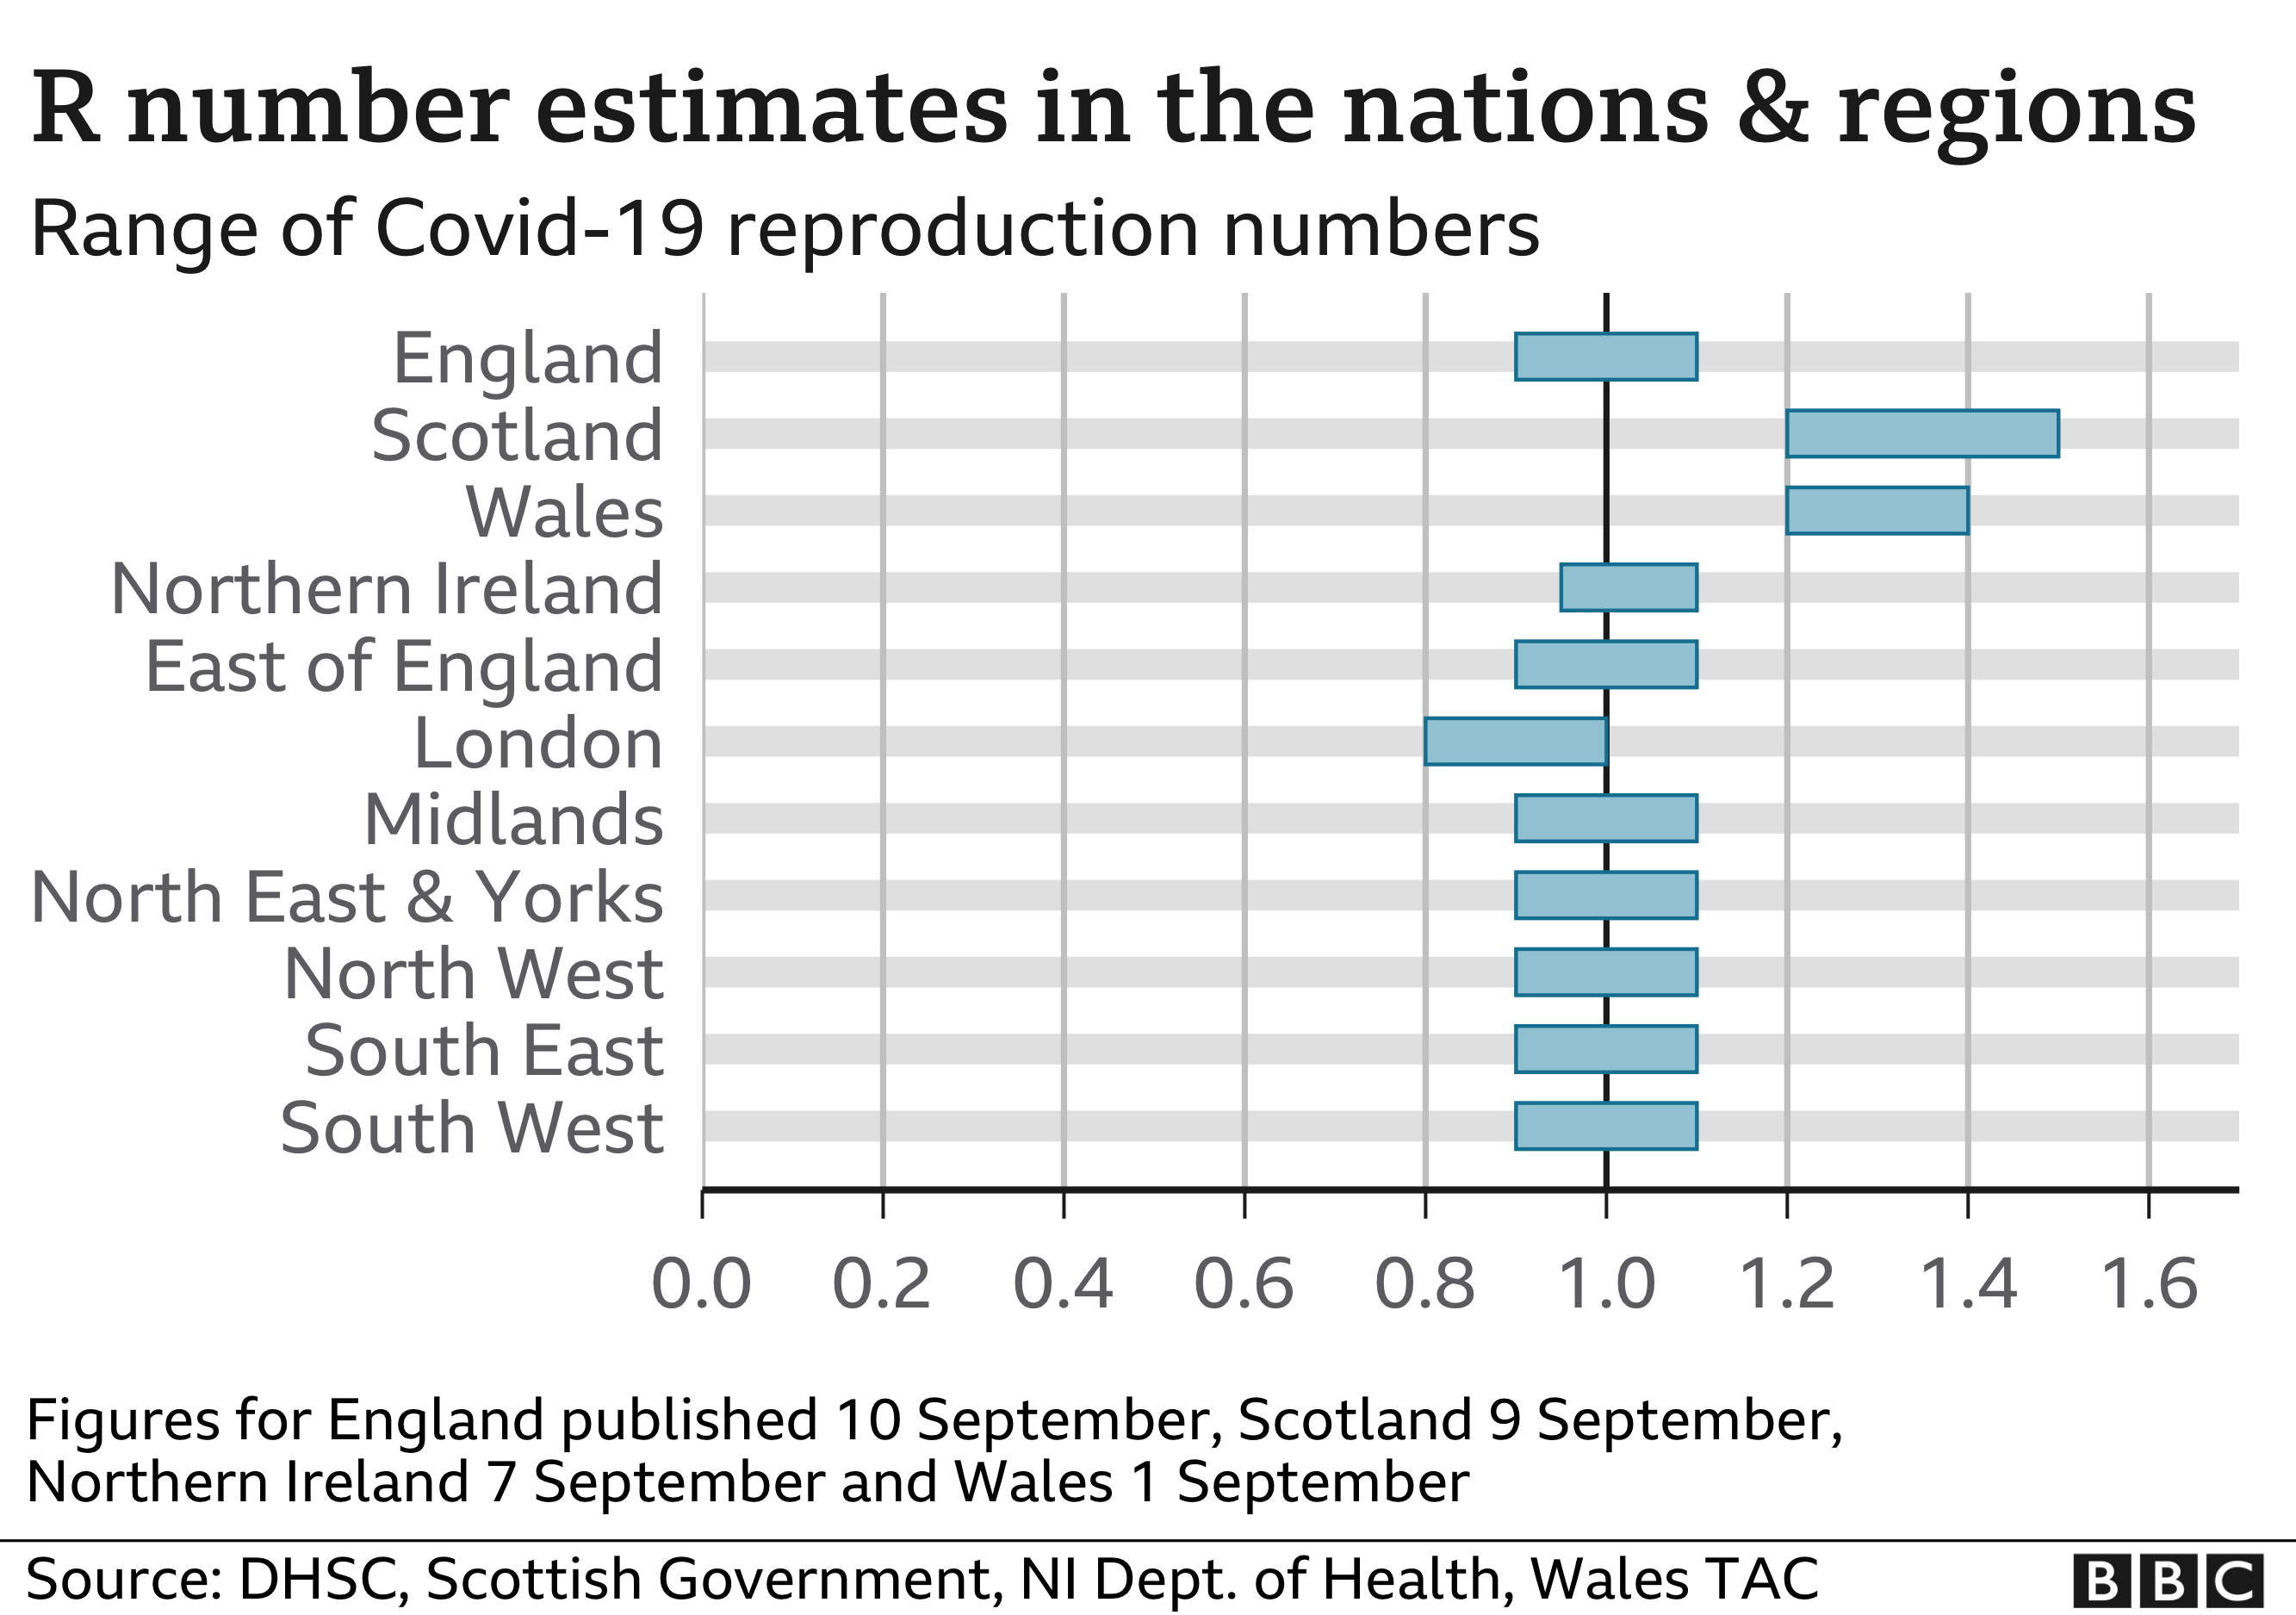 Chart showing R number estimates for nations and regions